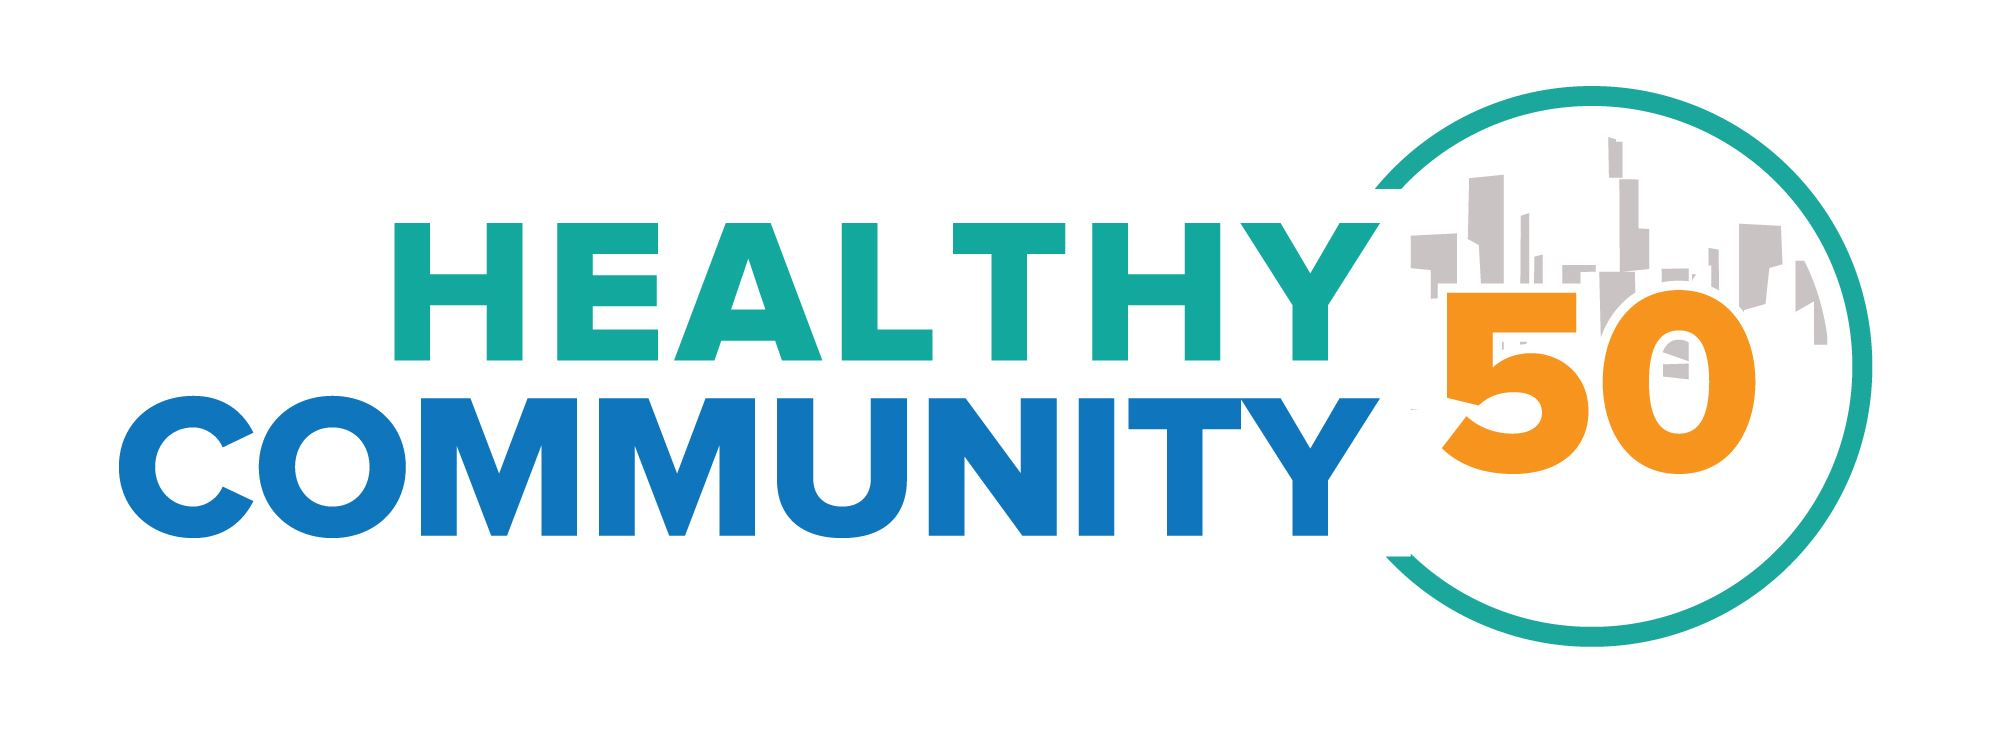 healthycommunity50_hires